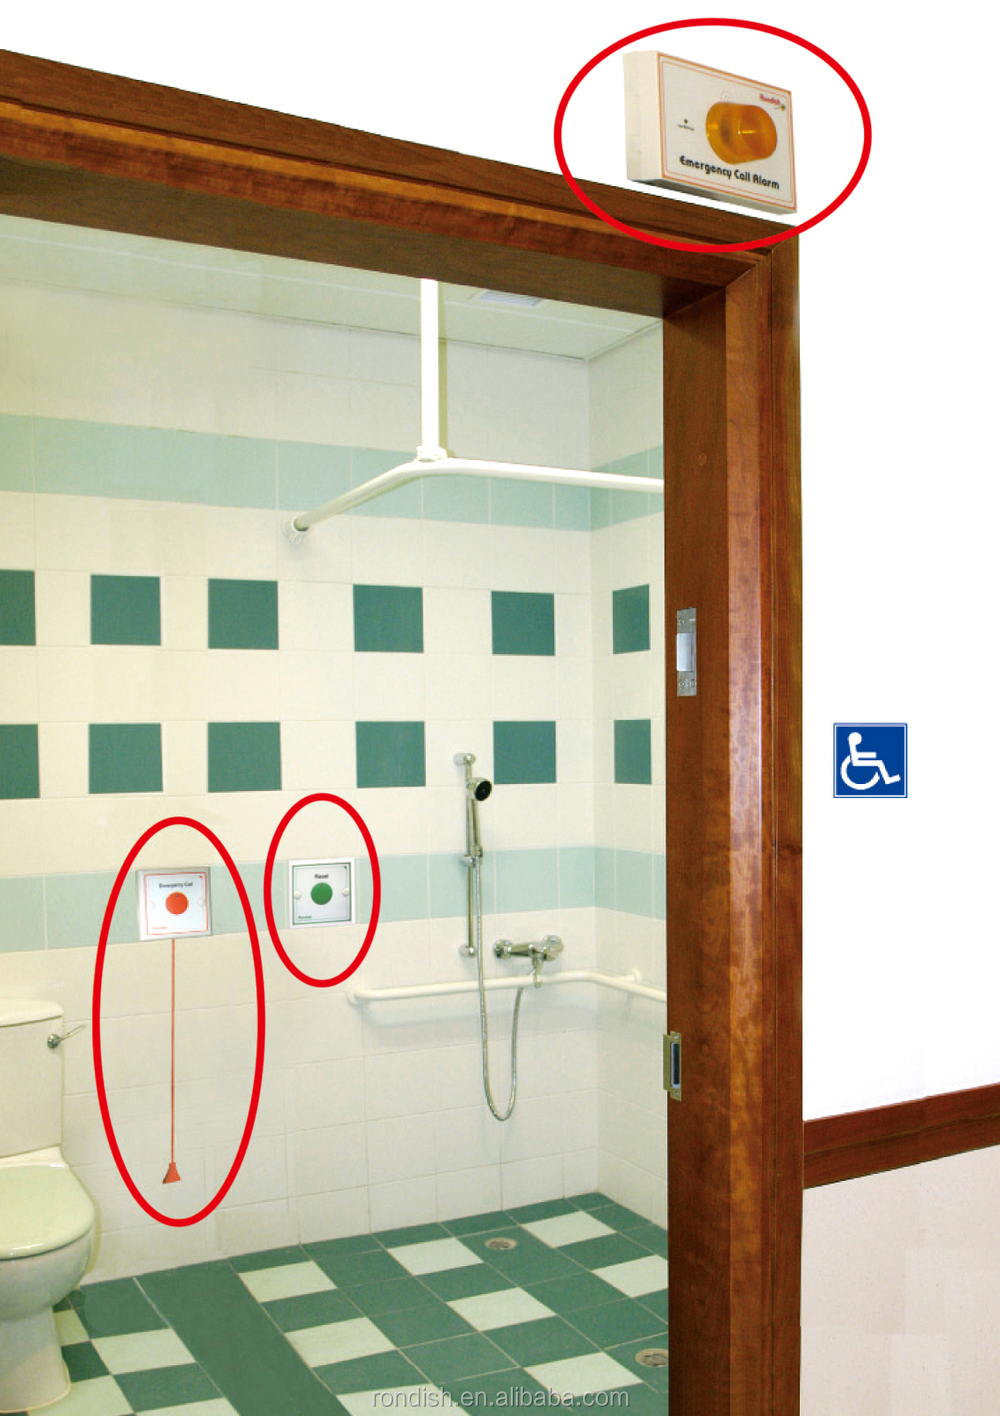 Baño Discapacitados Unit:Bathroom Emergency Patient Call Systems